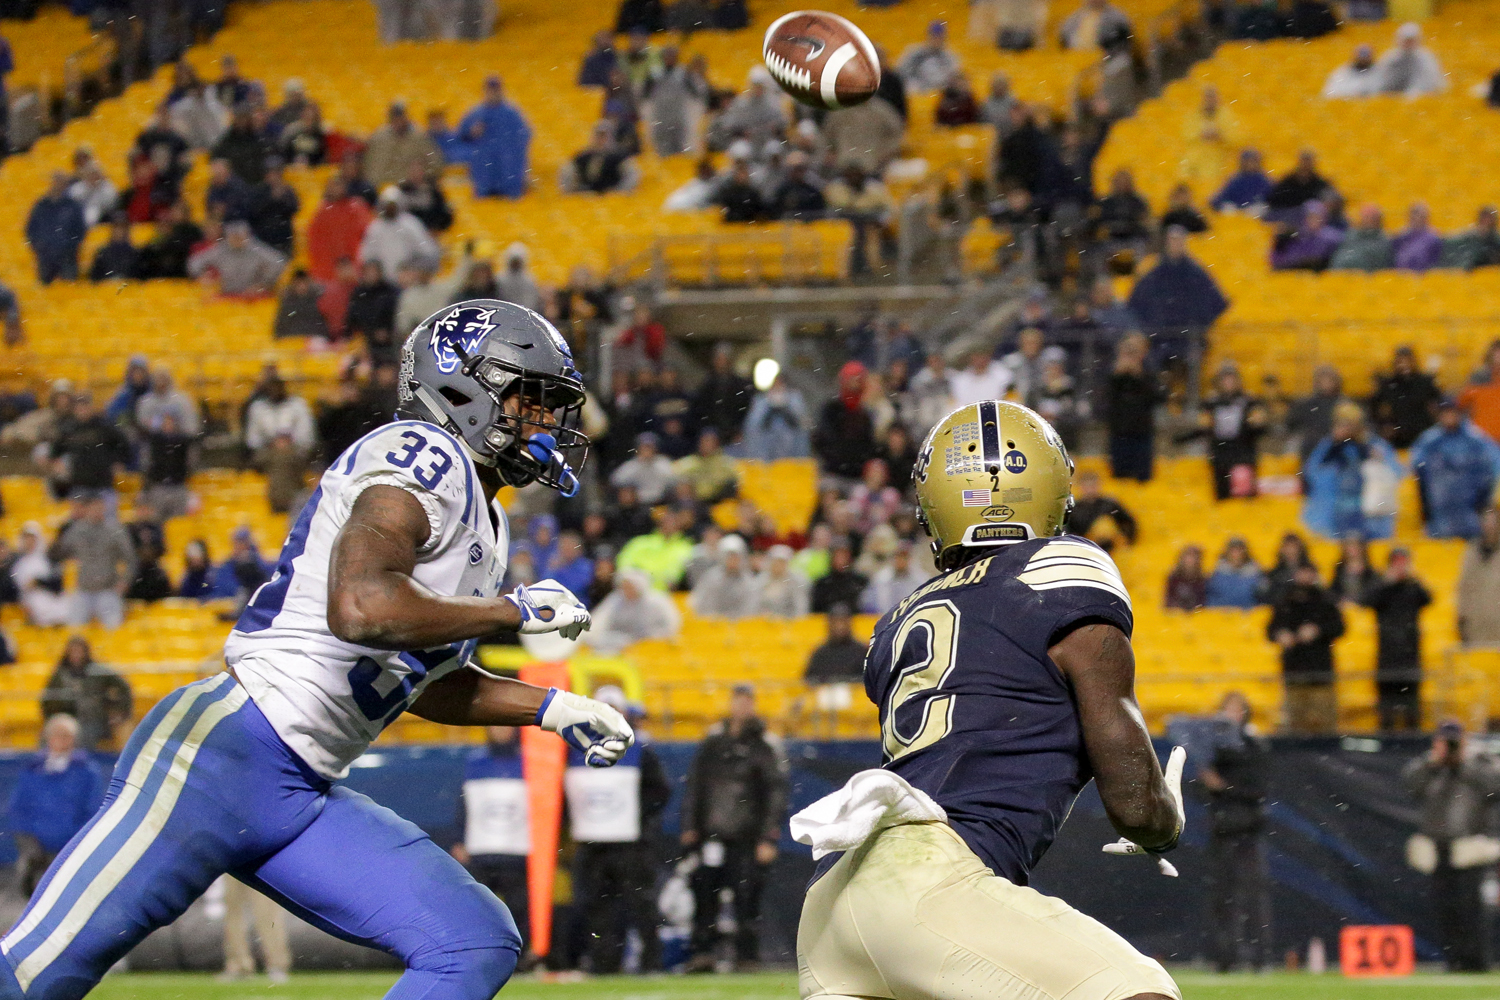 Junior wide receiver Maurice Ffrench (2) receives Pitt's winning touchdown pass during the final minutes of the fourth quarter.